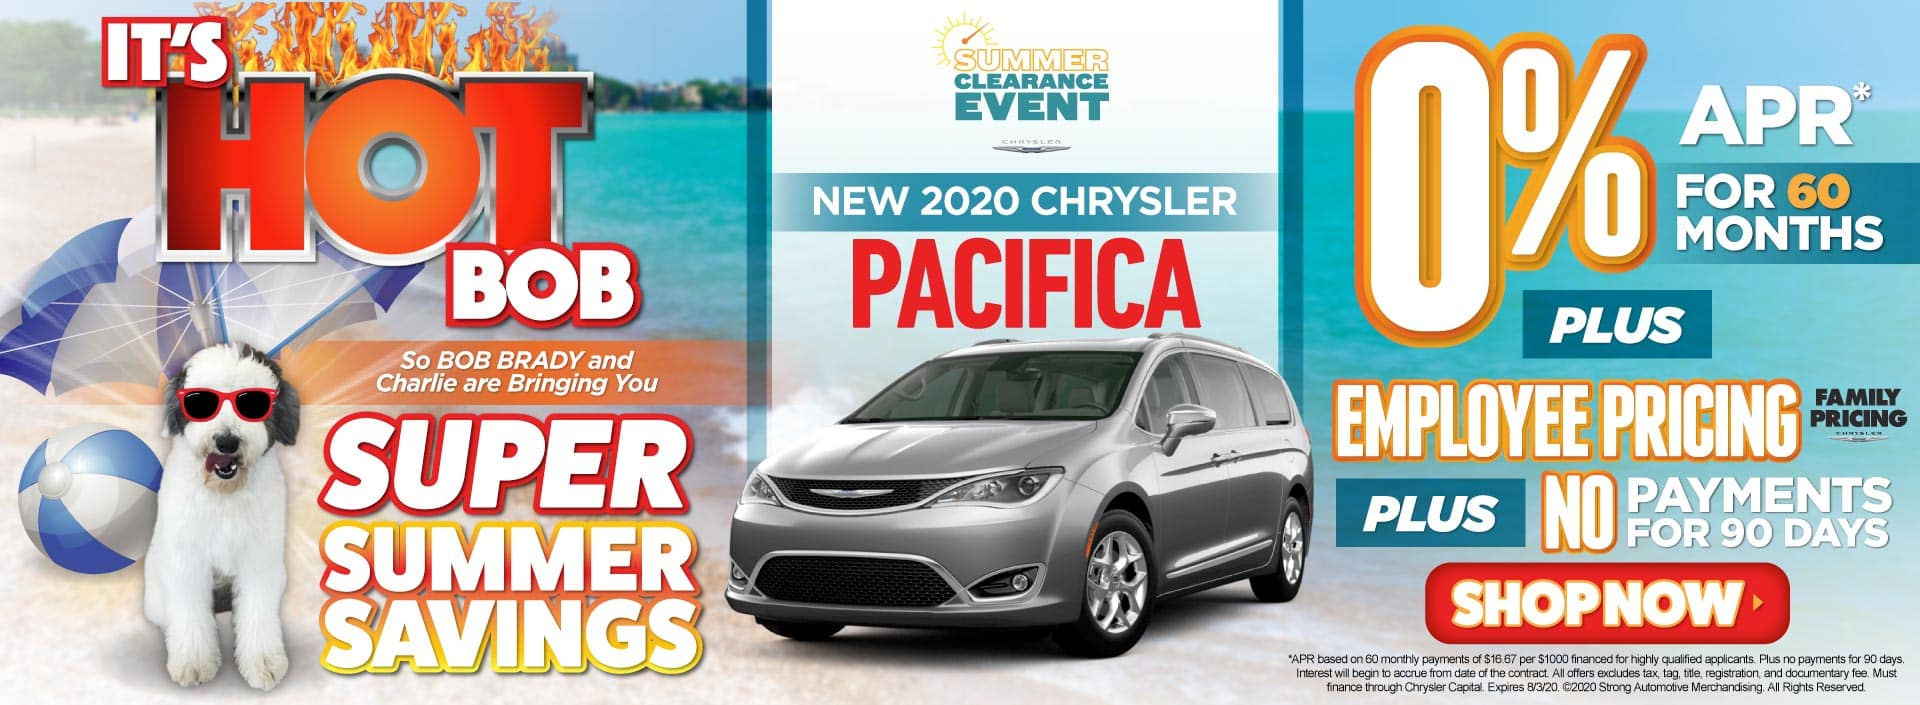 New 2020 Chrysler Pacifica 0% APR for 60 Months - ACT NOW